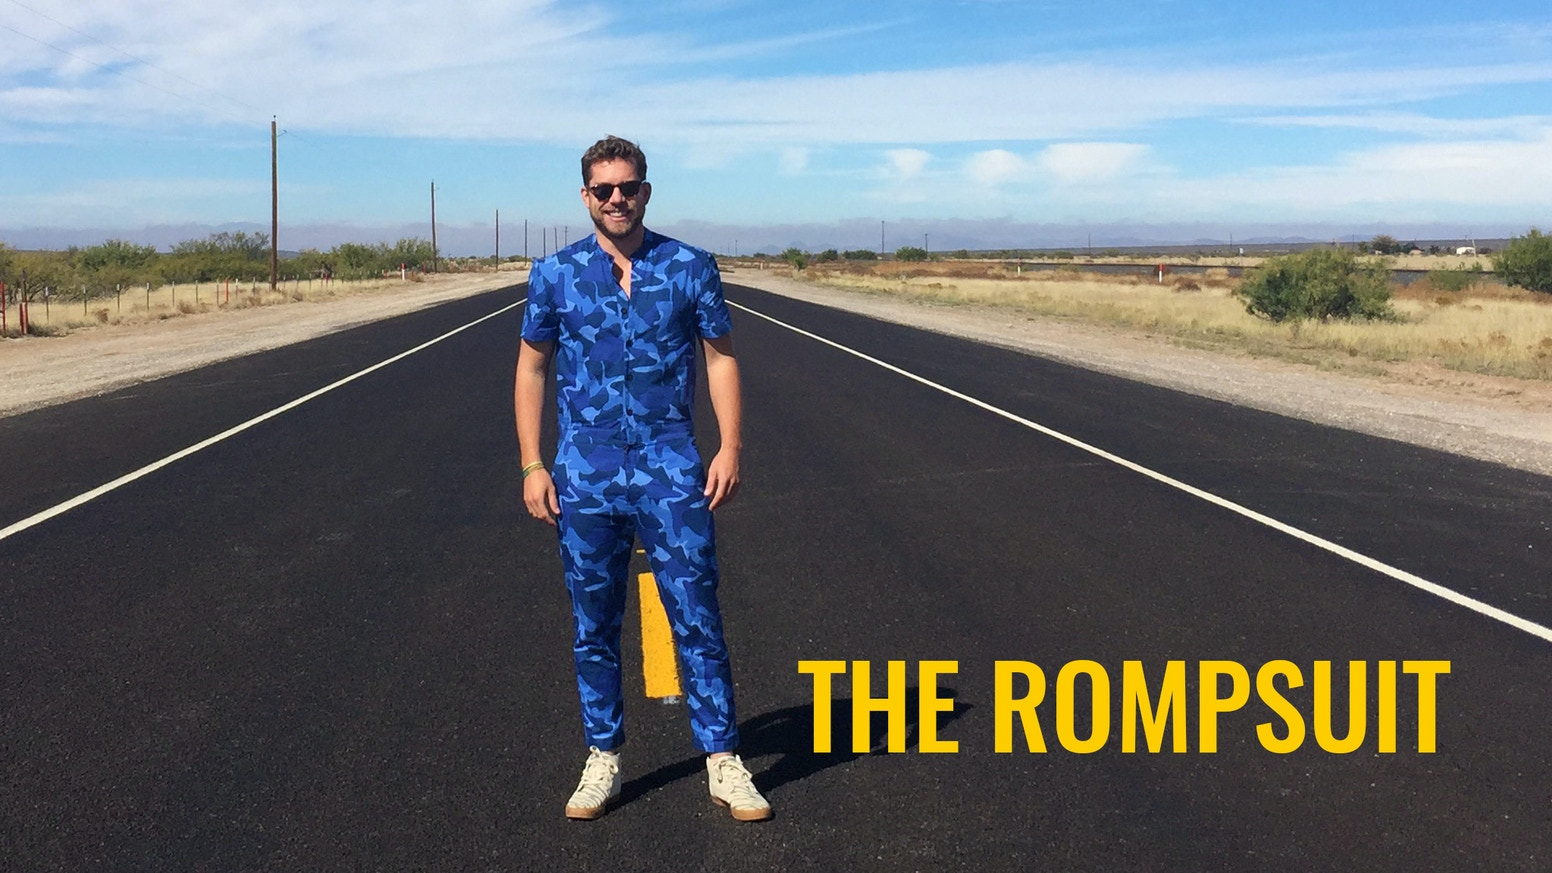 Say goodbye to basic men's fashion. RompHim is back with a modern jumpsuit that you never knew you needed...until now.